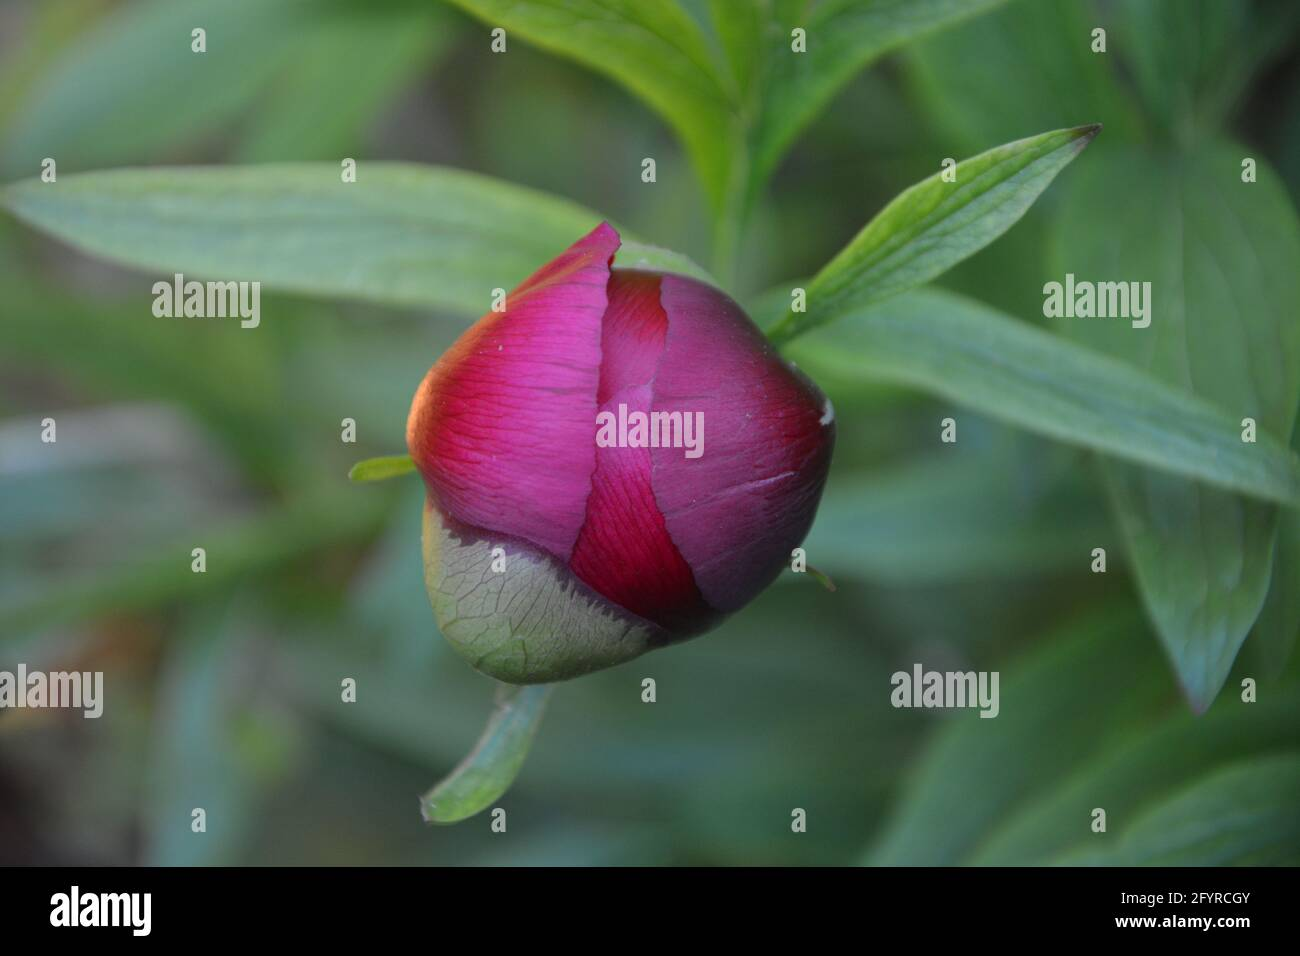 Paeonia Officinalis Rubra Plena, Old Garden Rose, Beautiful and Peaceful Floral Space Stock Photo